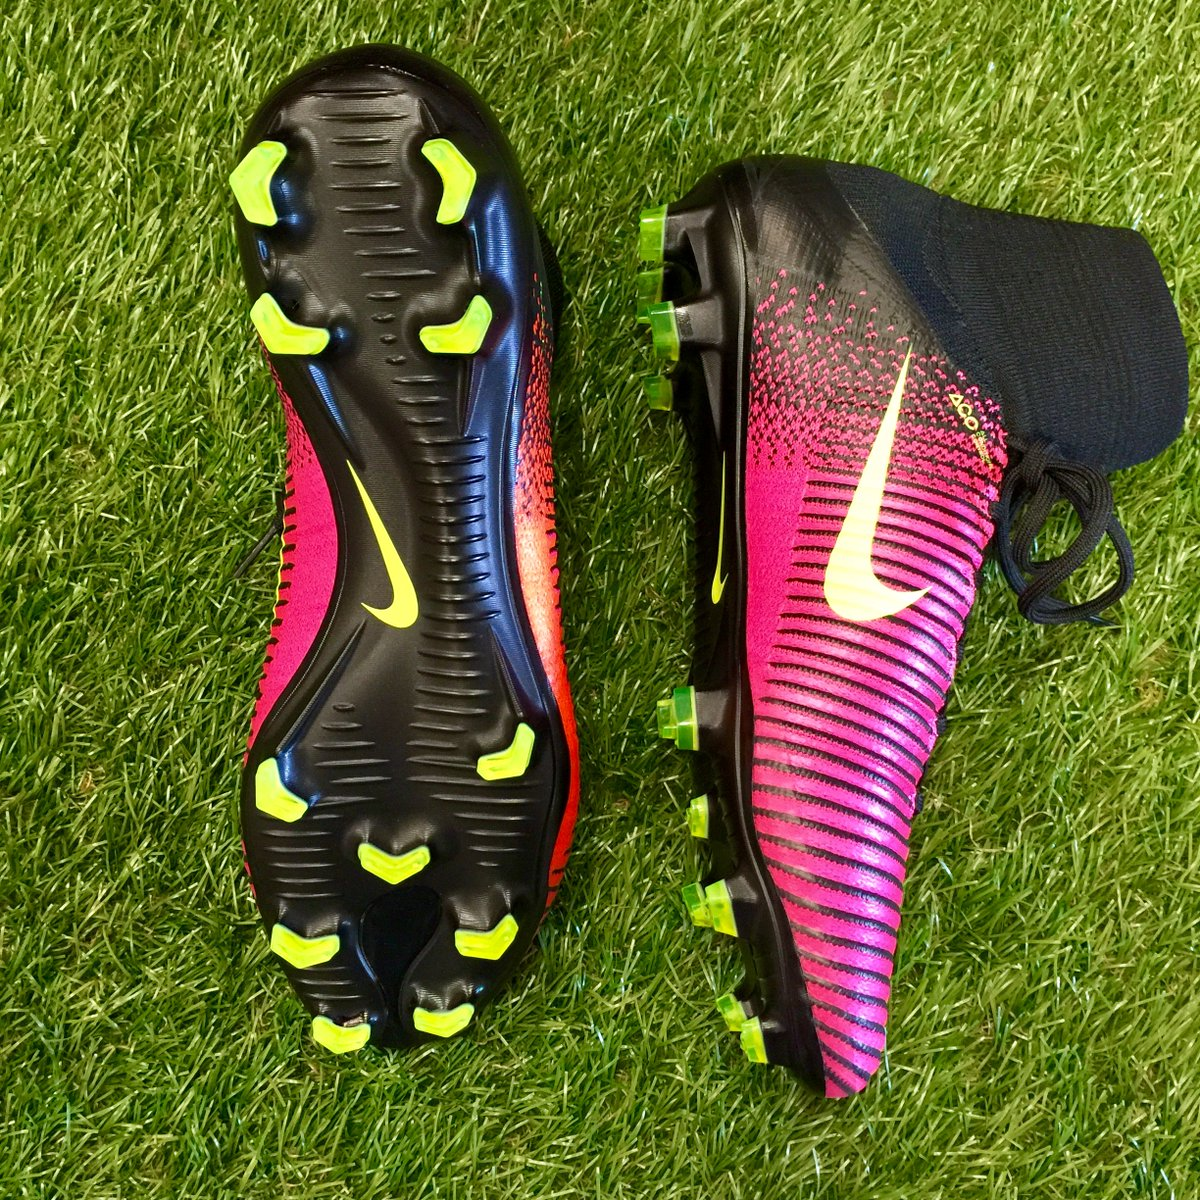 a65e99df95e0 the mercurial superfly v revolutionary stud configuration for fit touch amp  traction nike